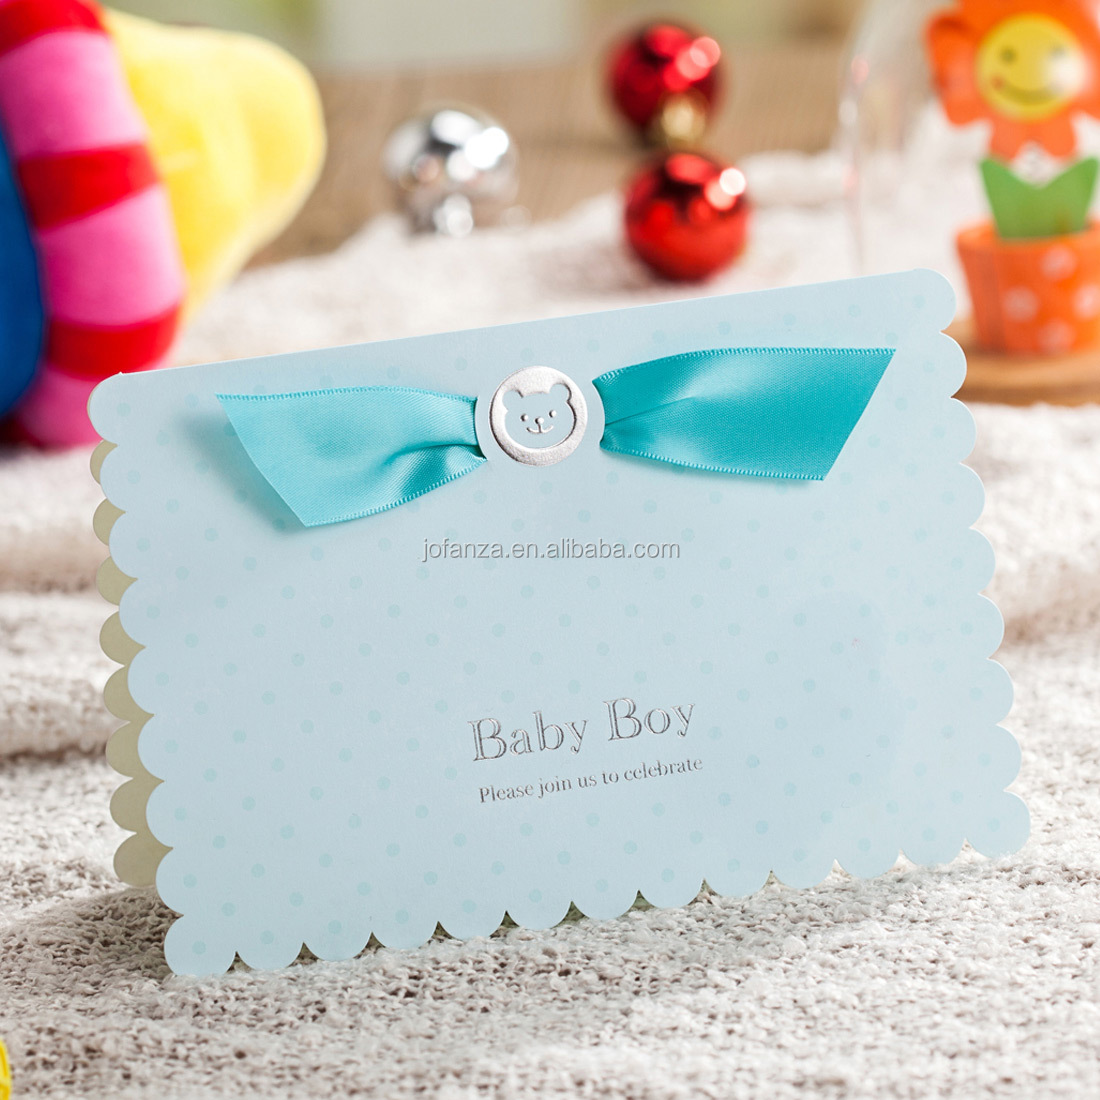 Wishmade Baby Shower Decorations Invitations With Envelope For Baby Birthday Party Sample Buy Baby Shower Decorations Invitations Invitation Cards